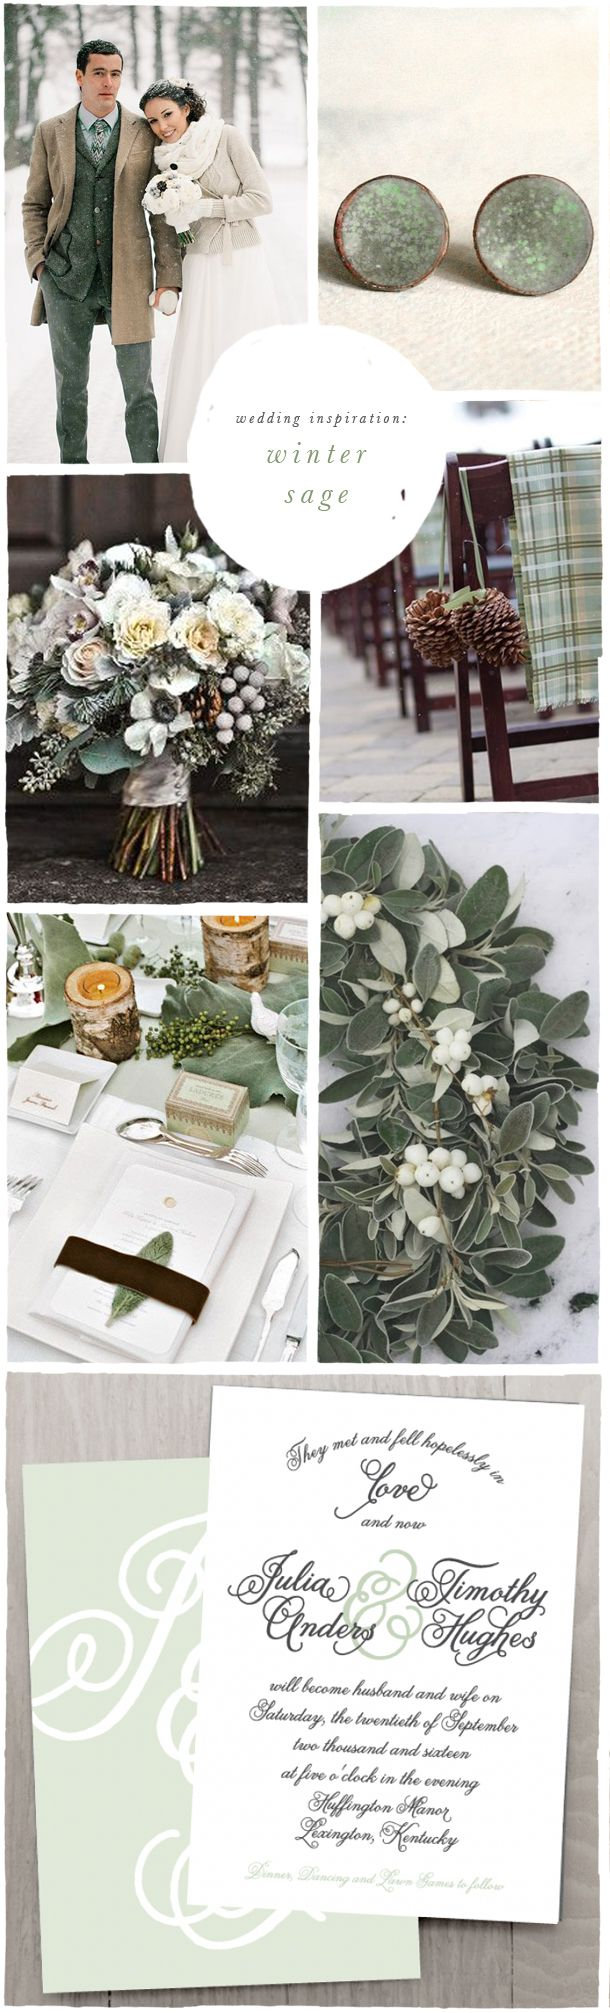 Winterhochzeit-Konzept in Braun und Grün – White and Soft sage, pale dusty green wedding